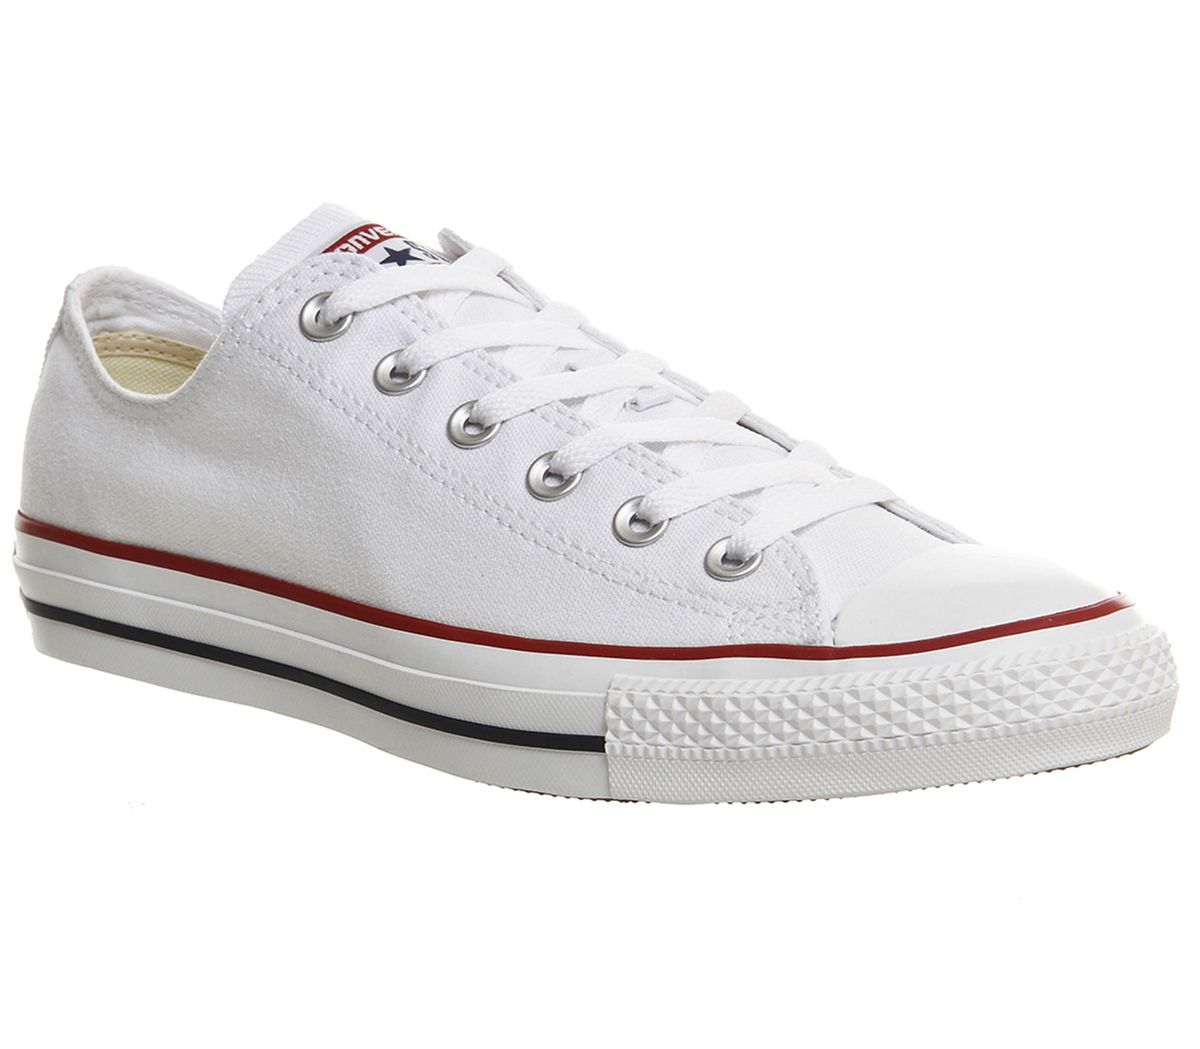 9dd5ac85842c Converse All Star Low White Canvas - Unisex Sports